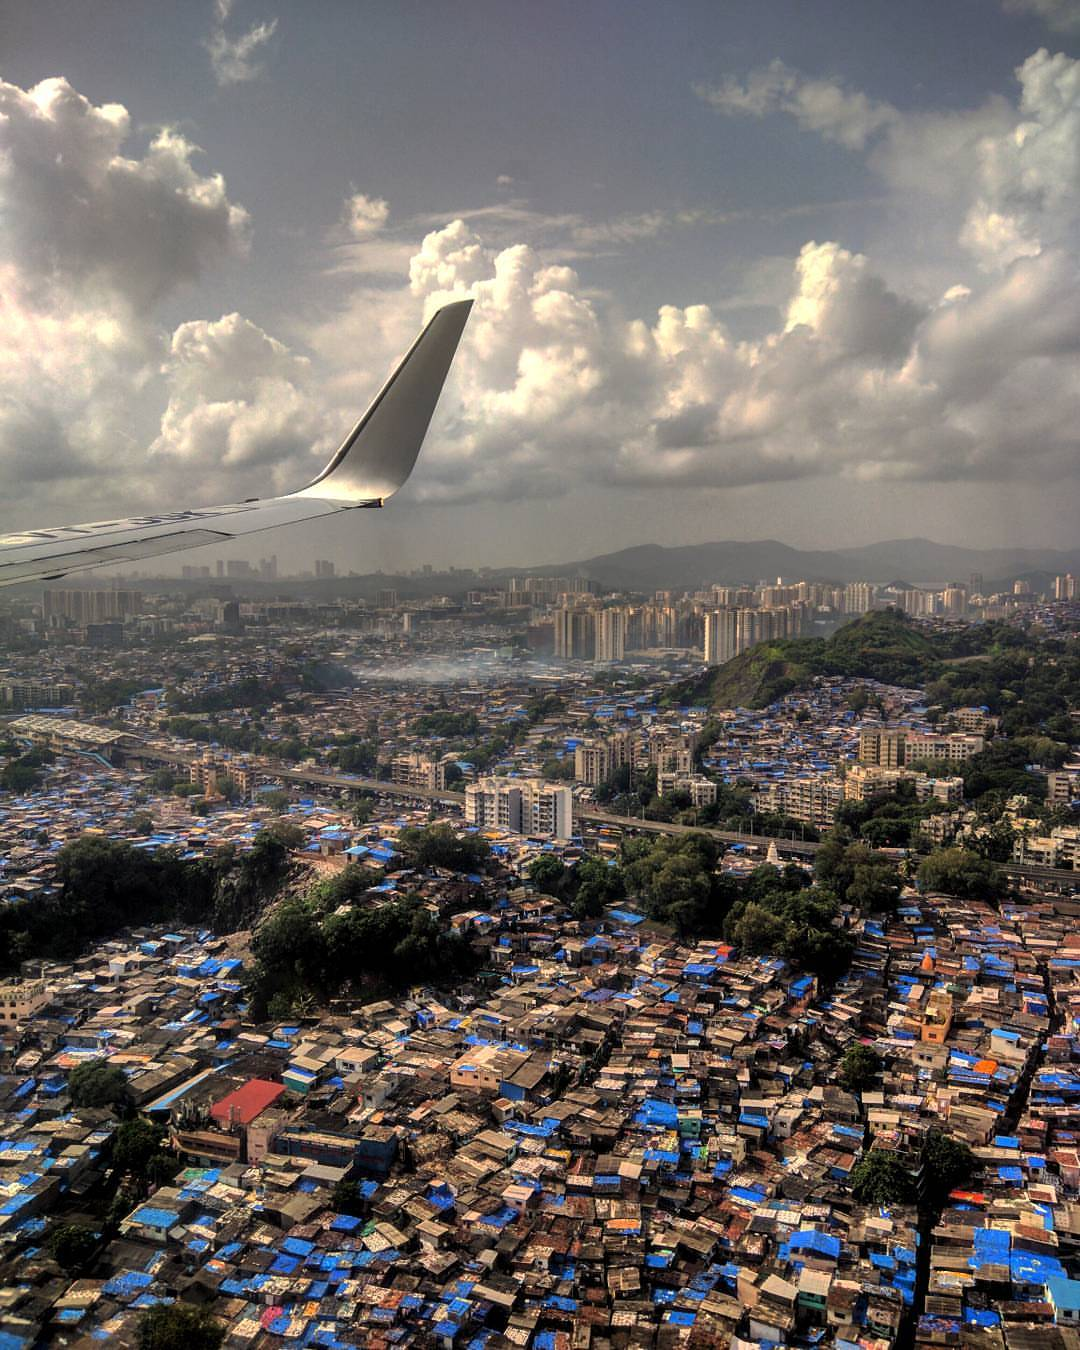 I took this shot back in 2017 during the monsoon season. My favourite thing about this photo is the surrealism embedded in the view overlooking the tarpaulin-covered houses in Bombay, where lies one of Asia's largest slums.